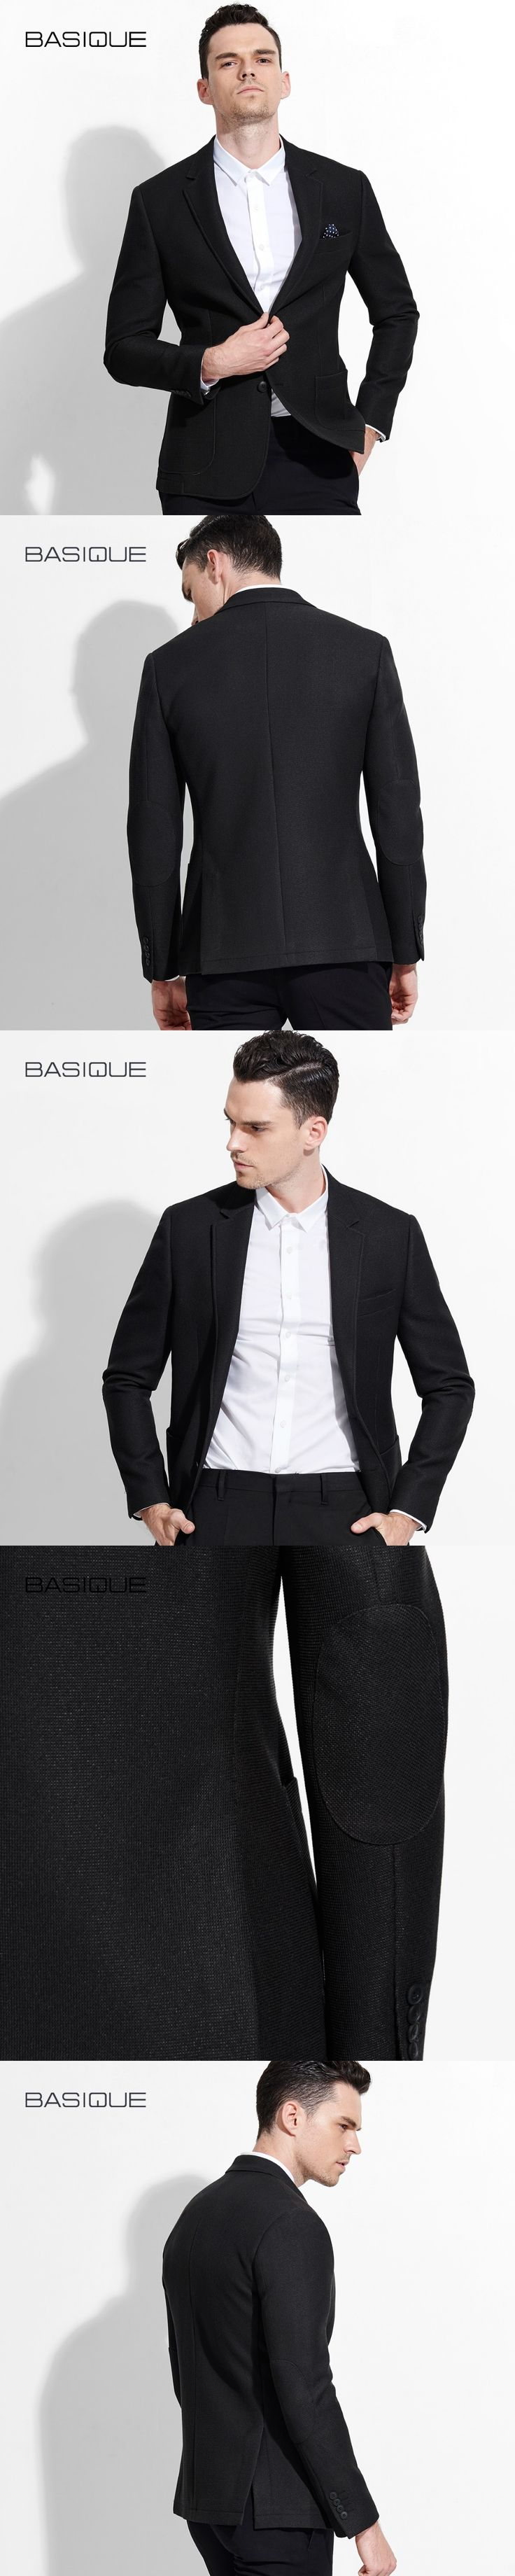 men blazer black 2017 spring new arrivals fashion young man business casual groom mens stage wear XS 2XL full sleeve suits coat